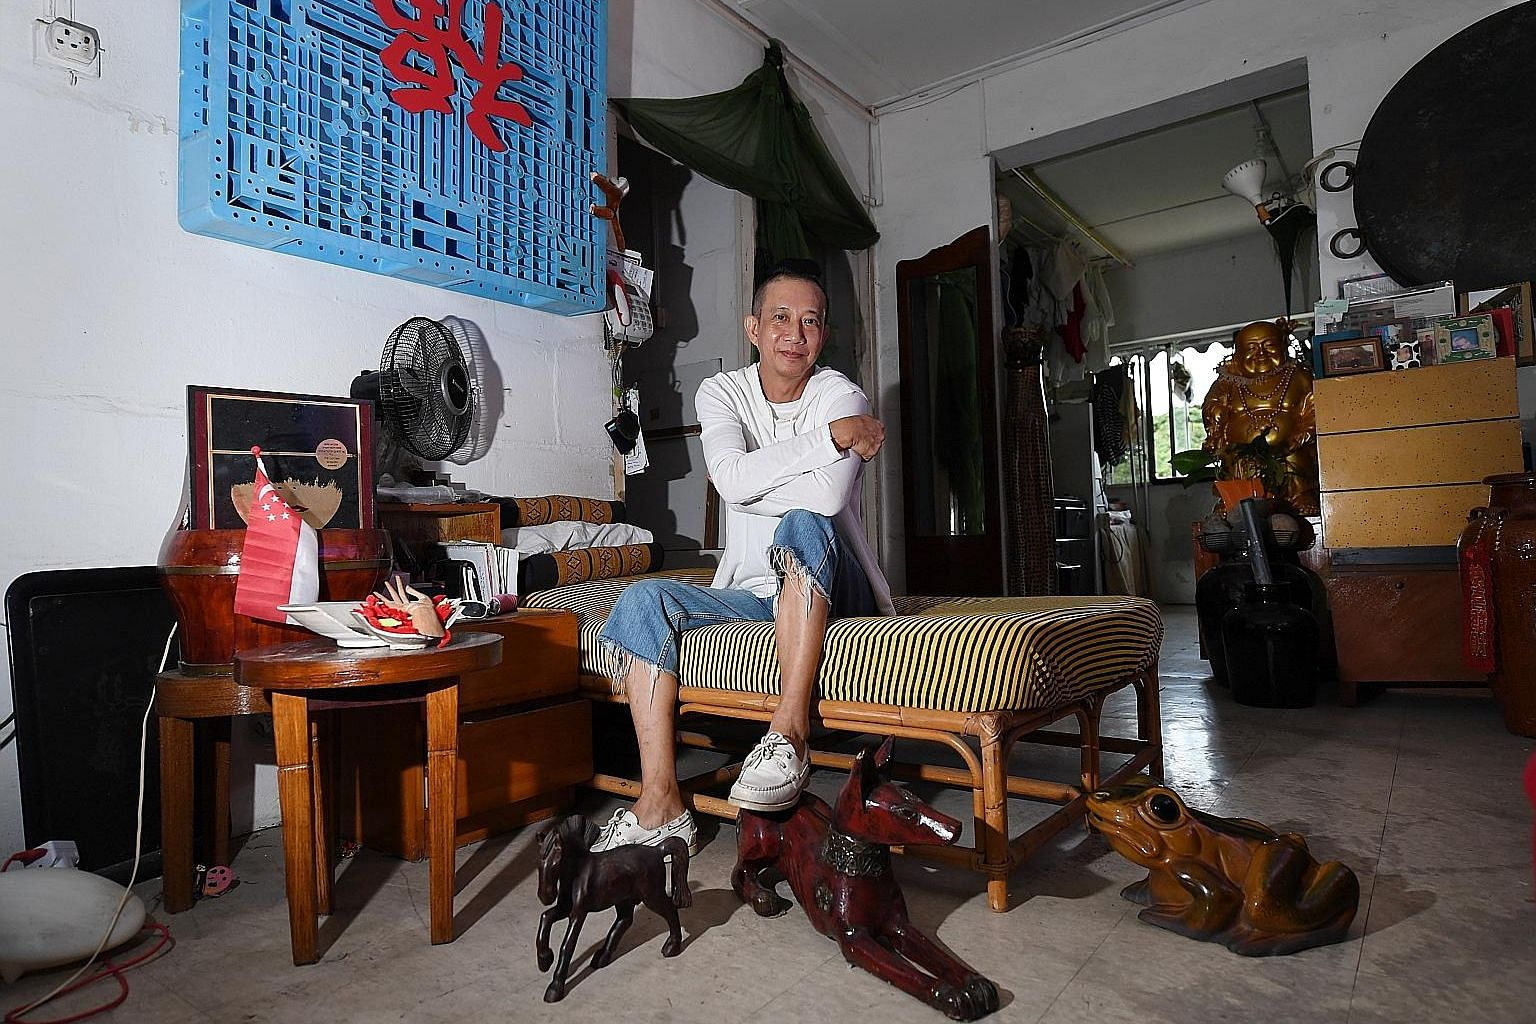 Mr Bilyy Koh is the only one left in Block 12 in Dakota Crescent. The 62-year-old will likely be moving to a new rental flat later this month after renovation work is done. Meanwhile, he takes it upon himself to share the history of the estate with h